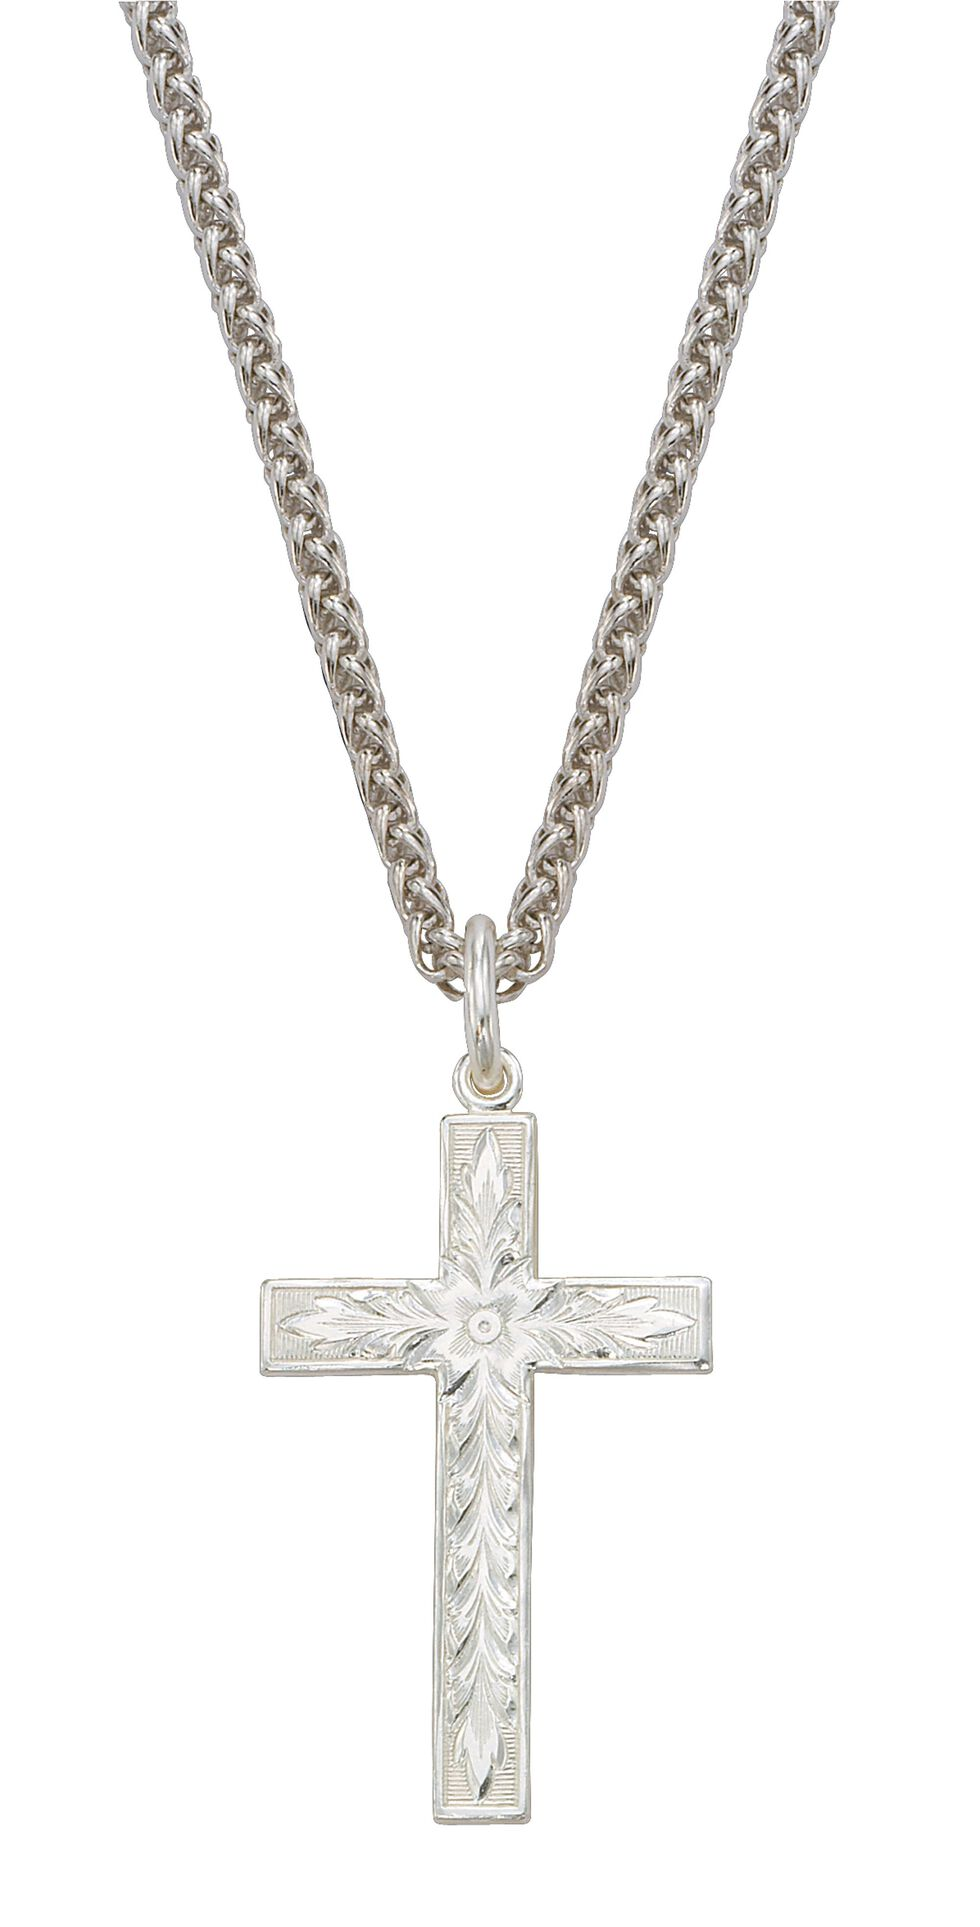 Montana Silversmiths Engraved Cross Charm Necklace, Silver, hi-res